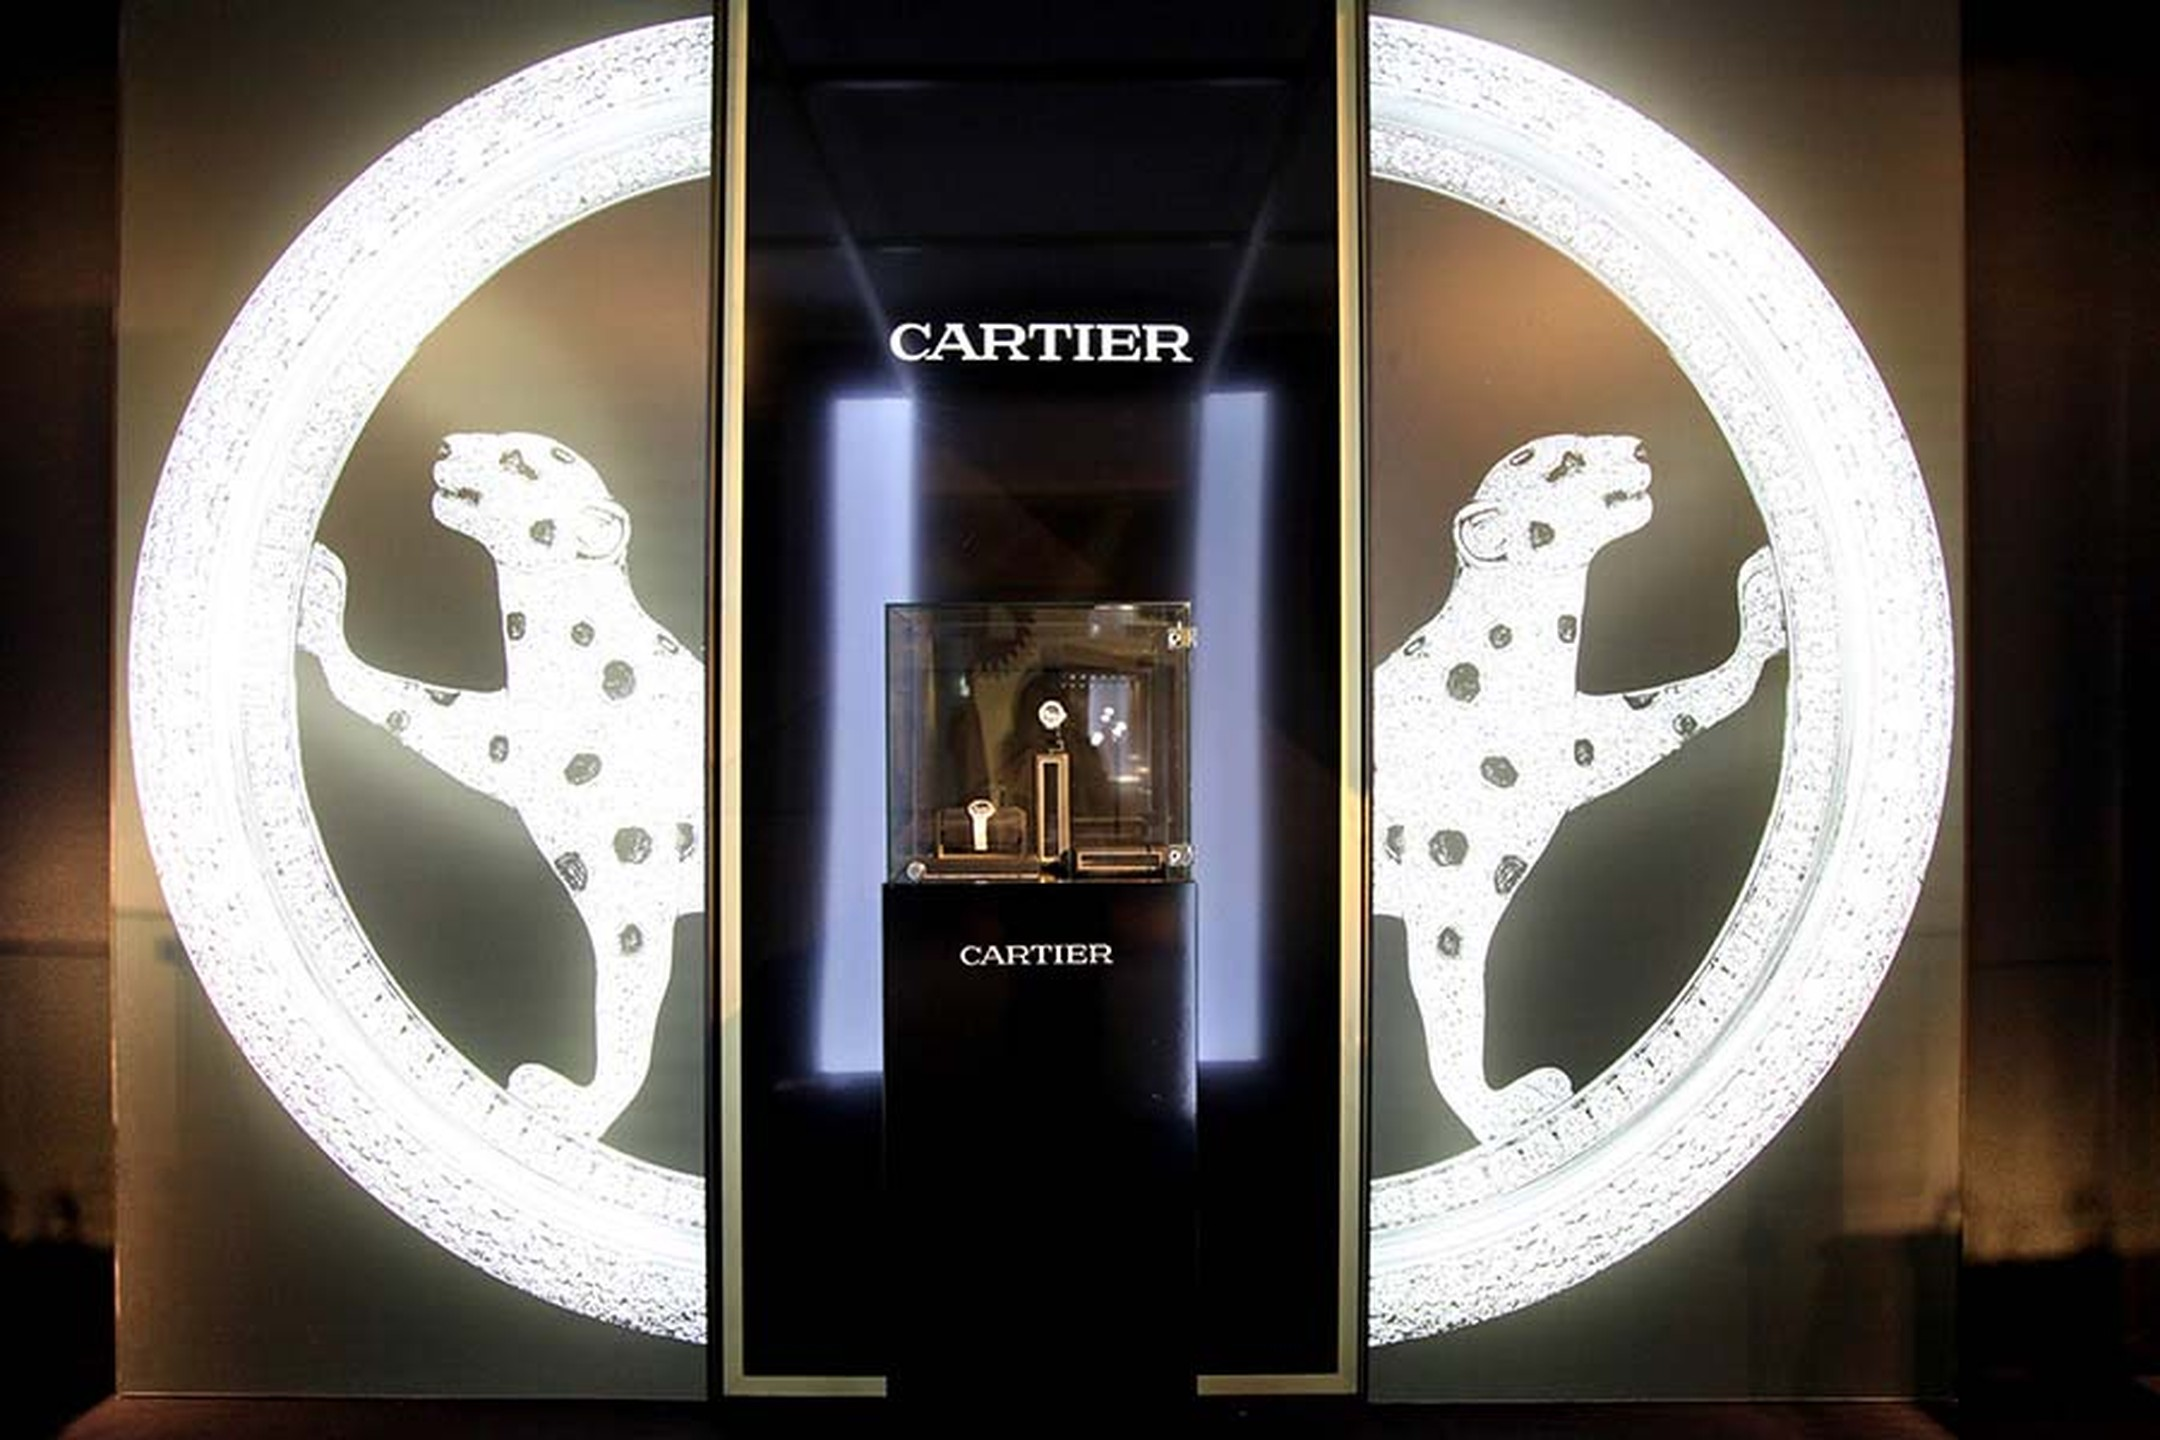 Cartier seduces at the SIAR in Madrid with a lavish display of watches and jewellery.